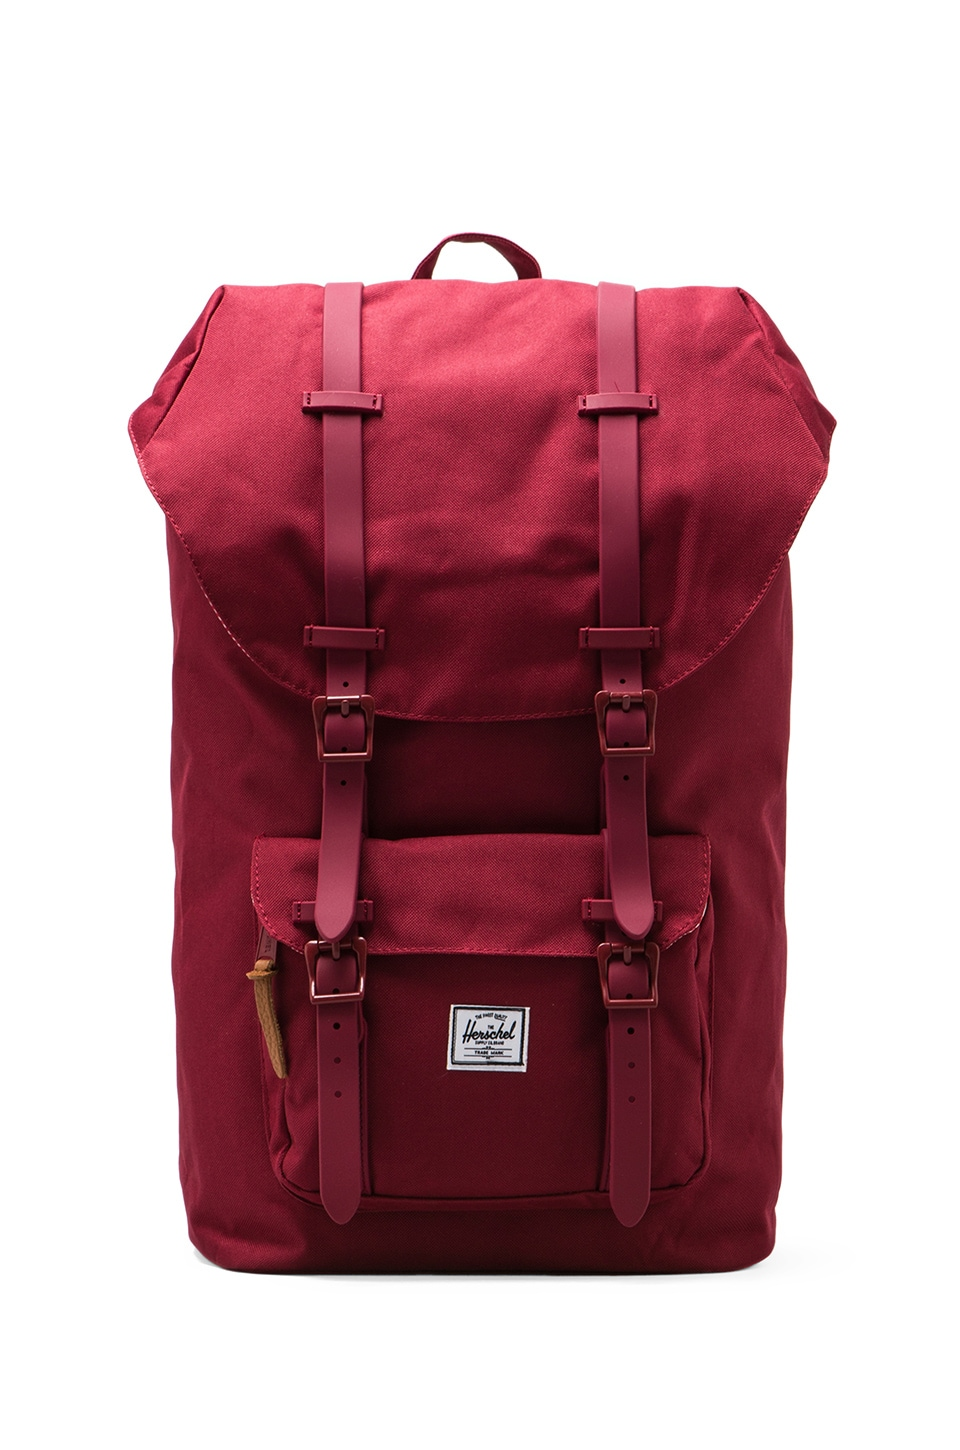 Herschel Supply Co. Little America Backpack in Burgundy